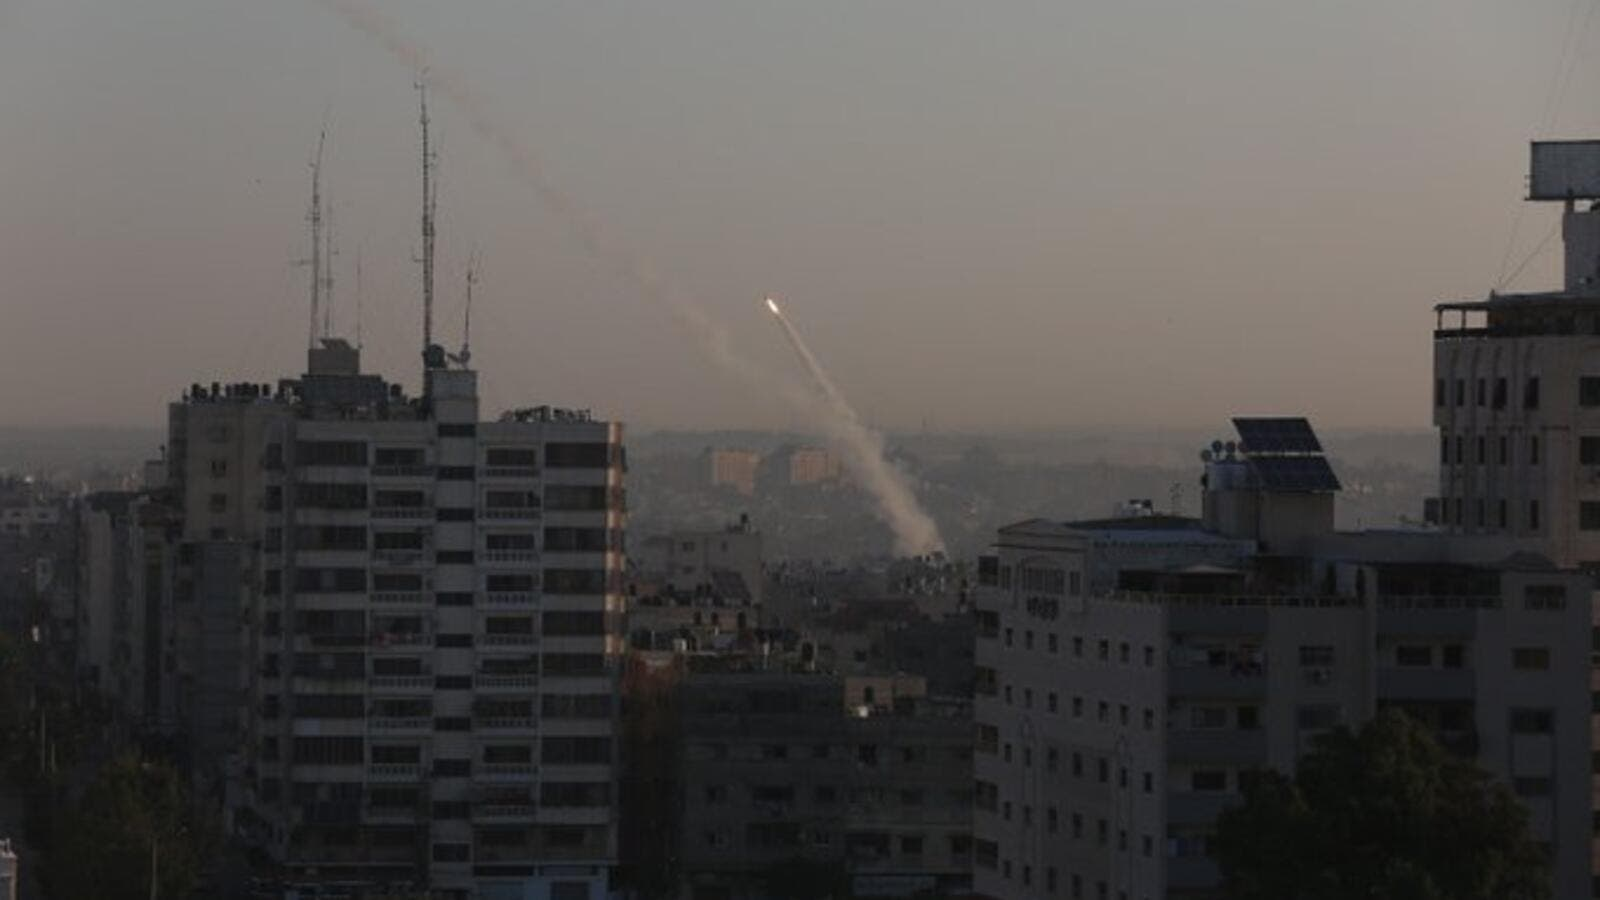 Over 60 rockets fired at #Israel so far (Twitter)